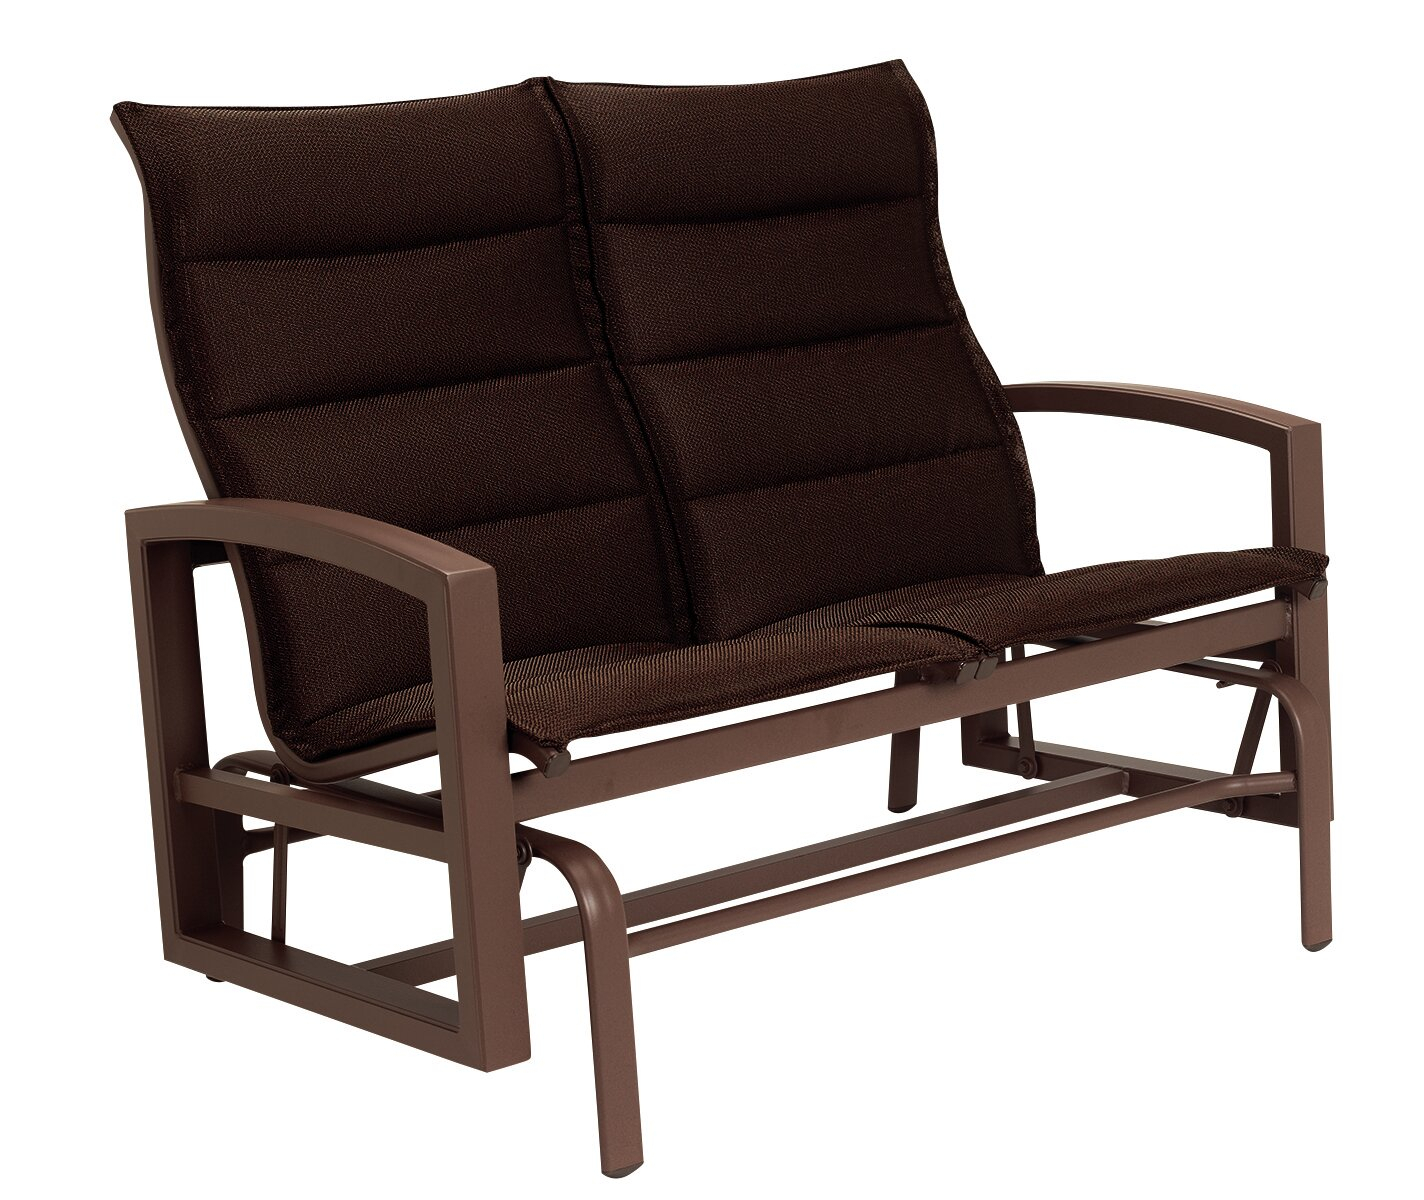 Lakeside Padded Sling Double Glider Throughout Padded Sling Double Glider Benches (View 11 of 25)